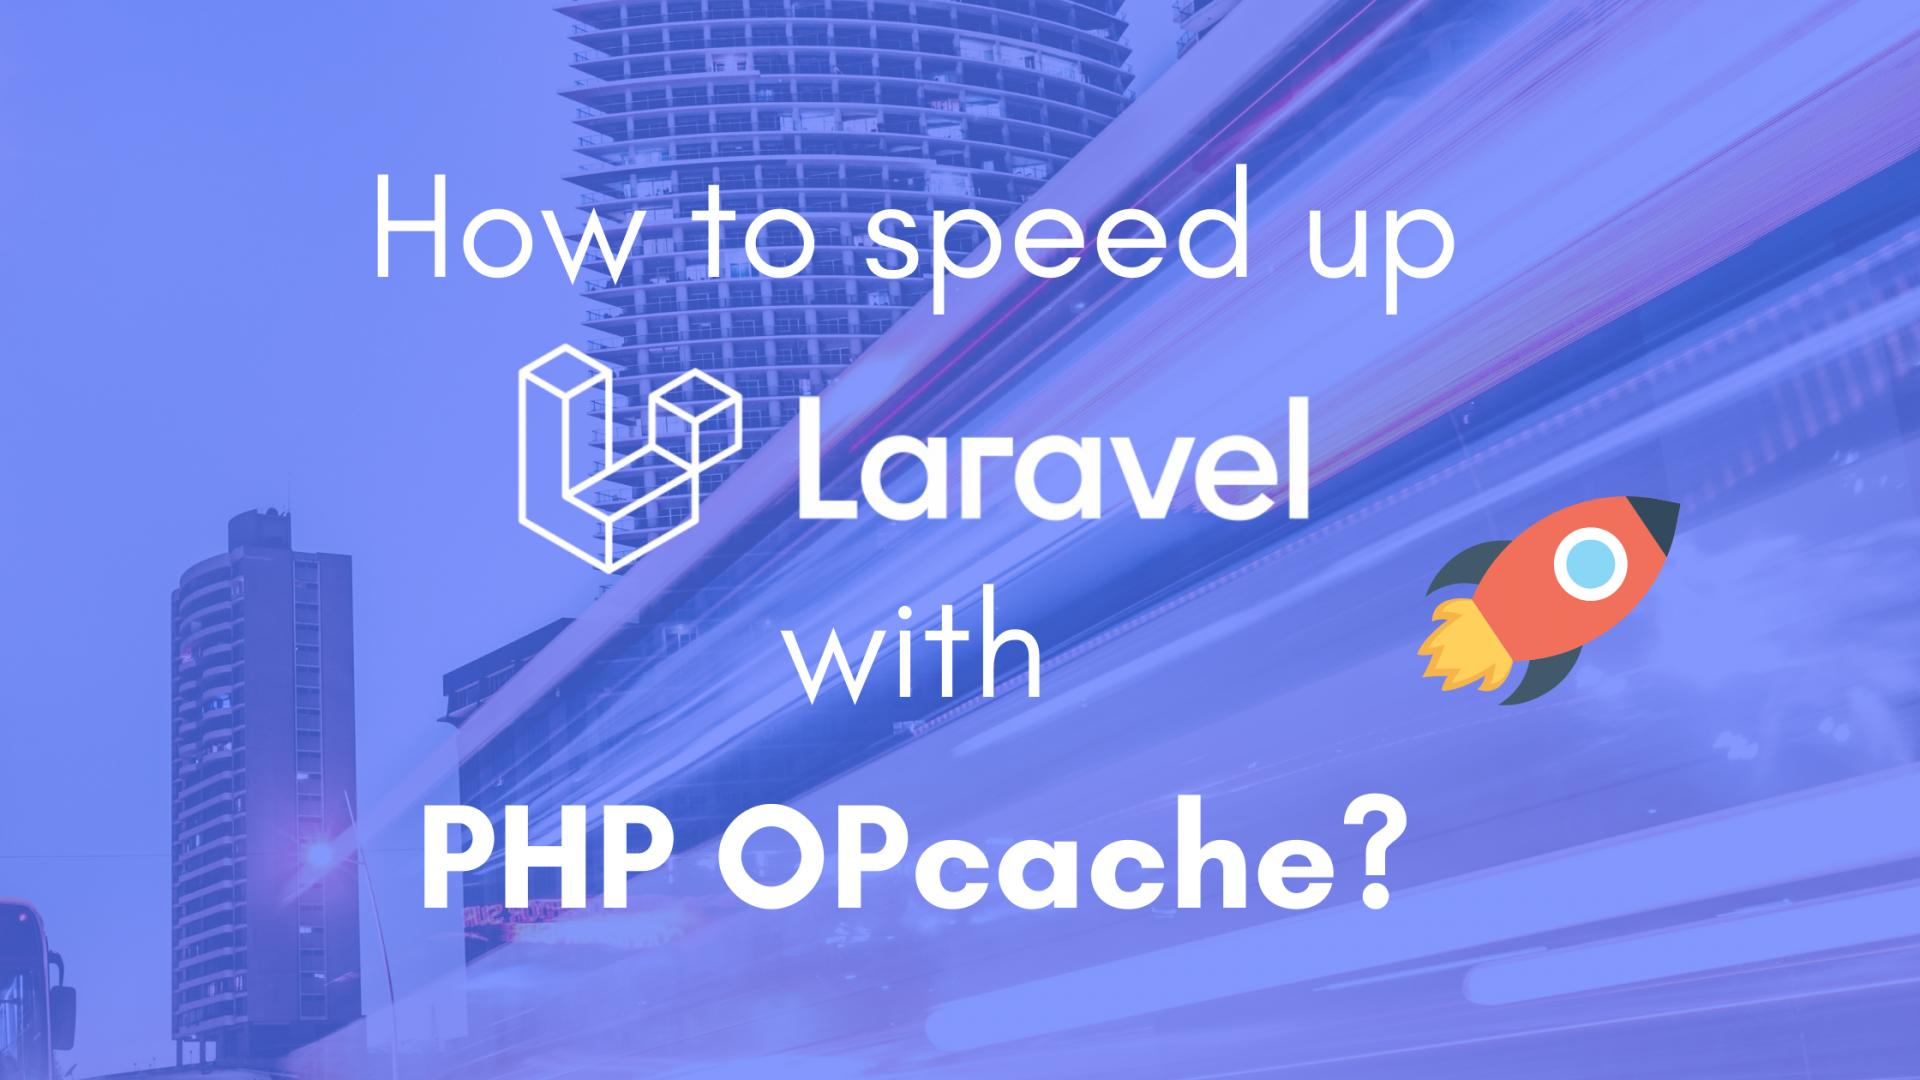 How to speed up your Laravel application with PHP OPcache?